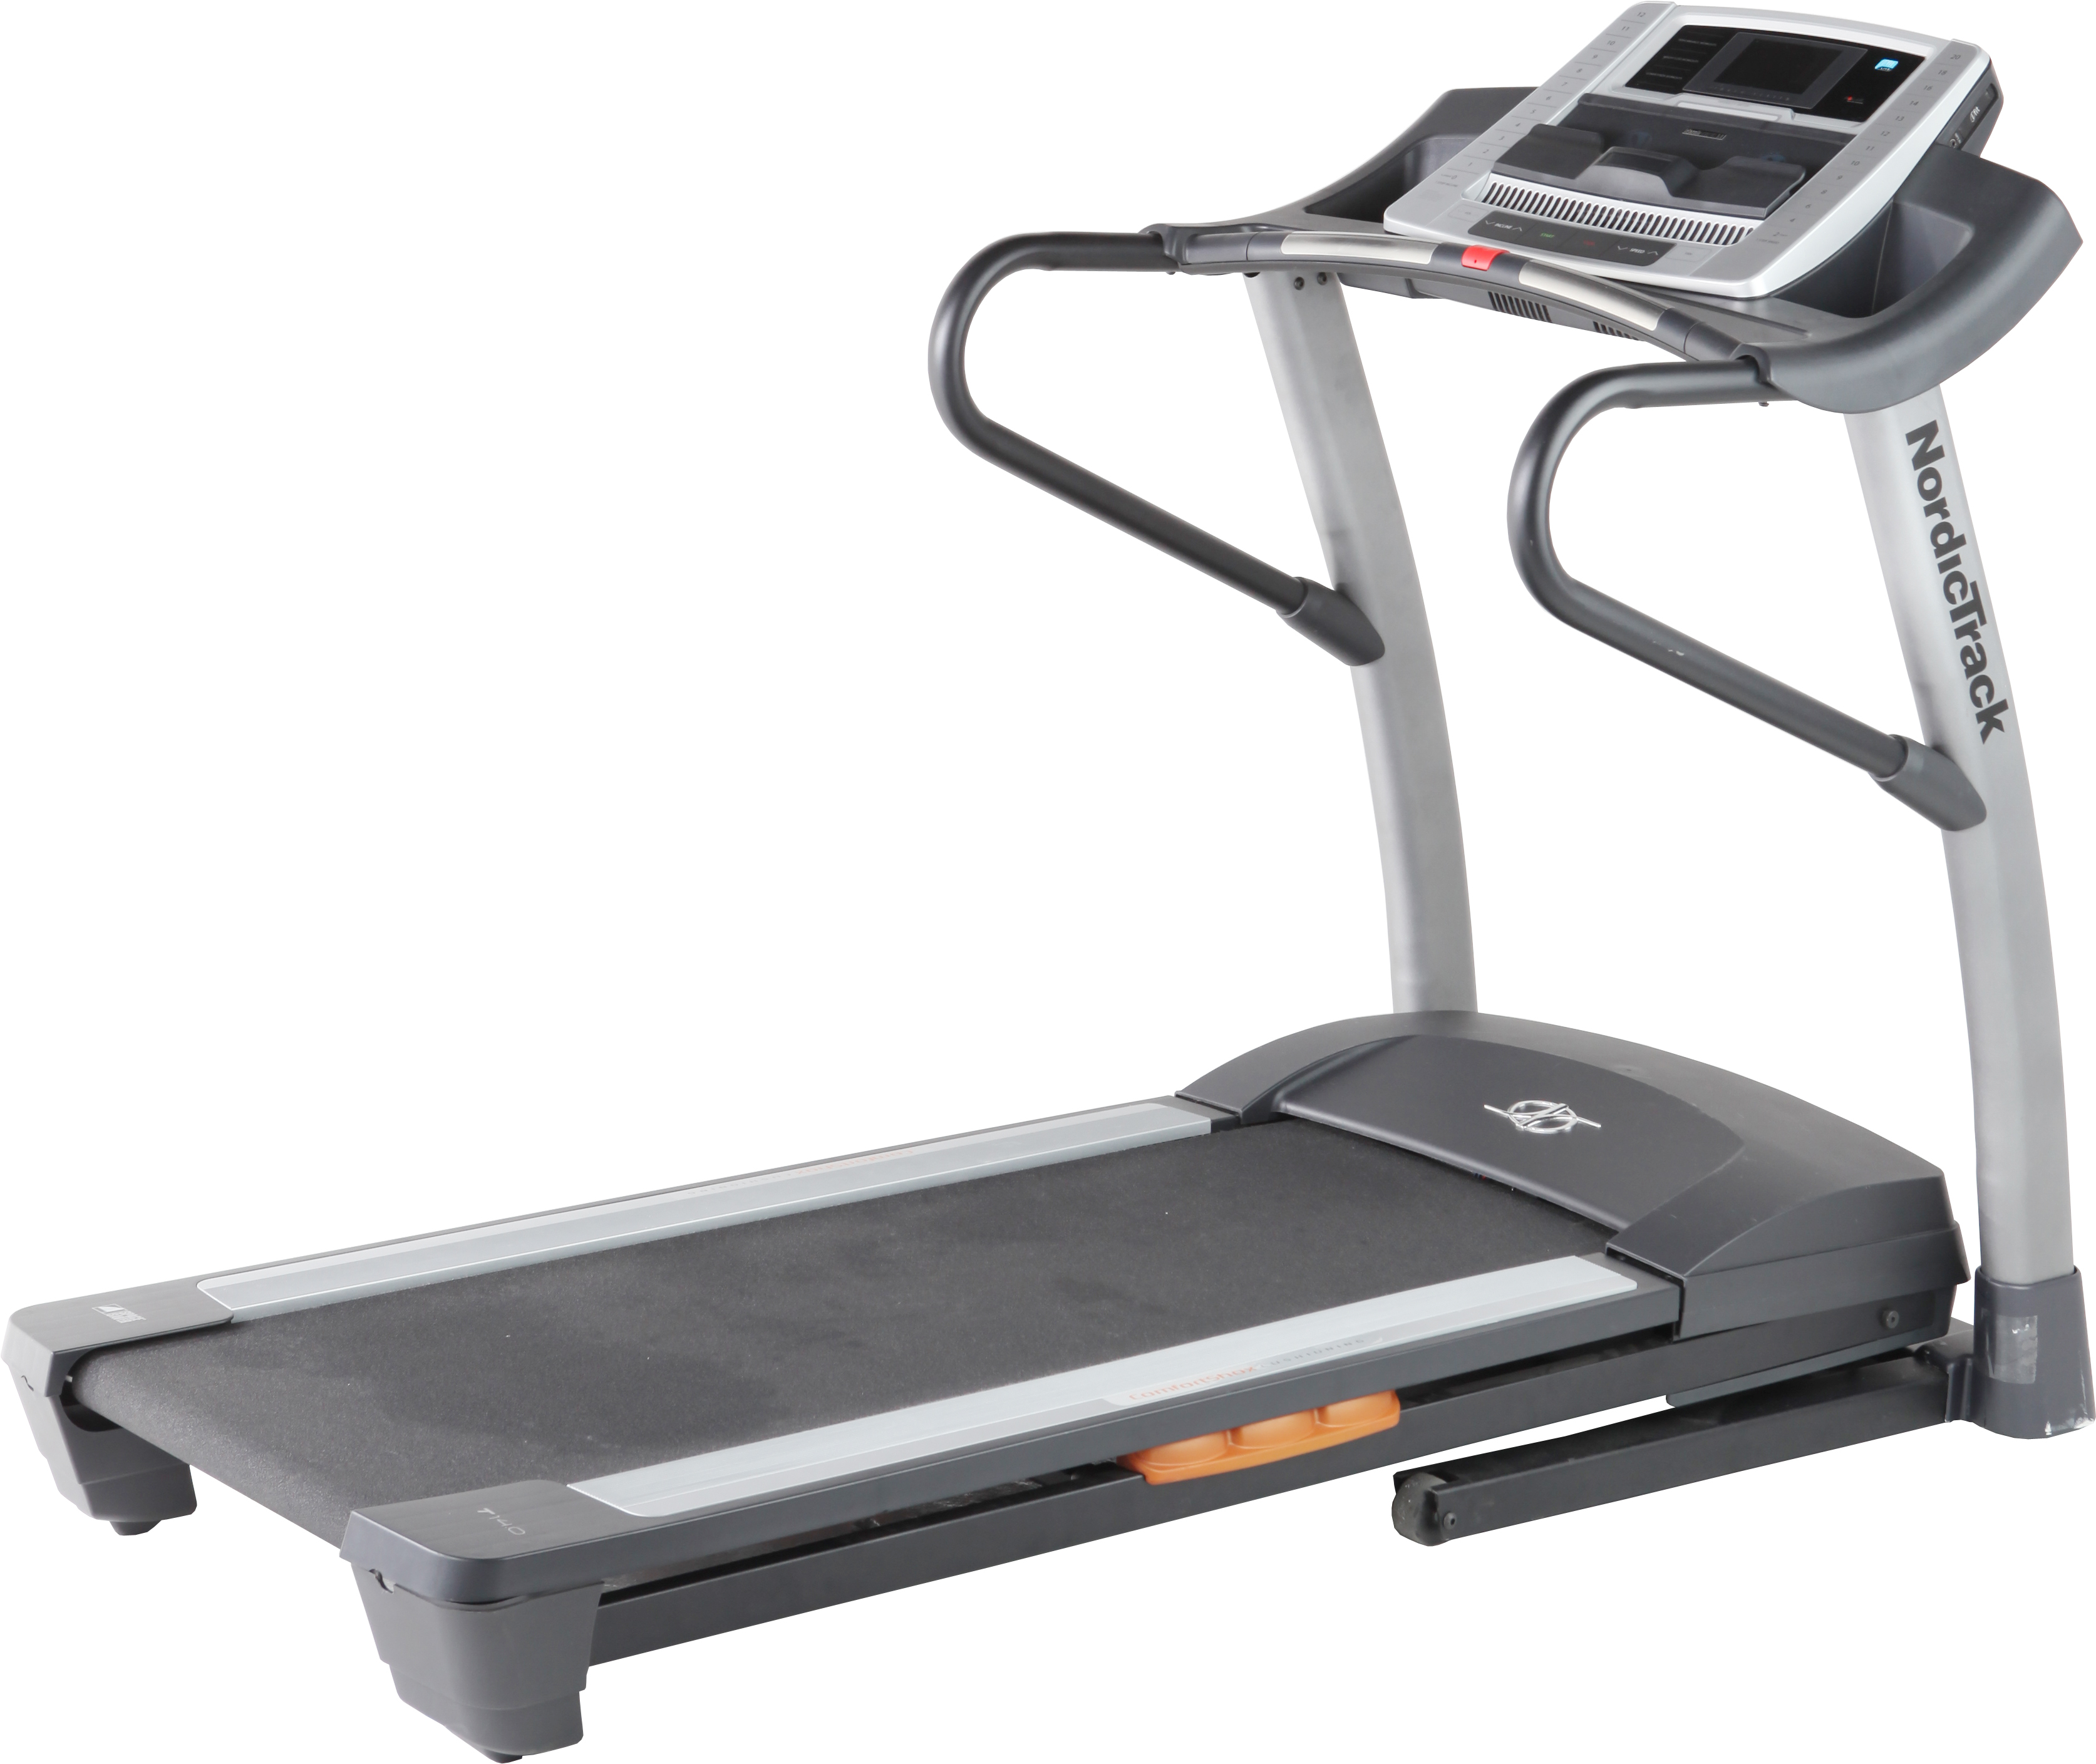 NordicTrack Announces First Ever Interactive Fitness